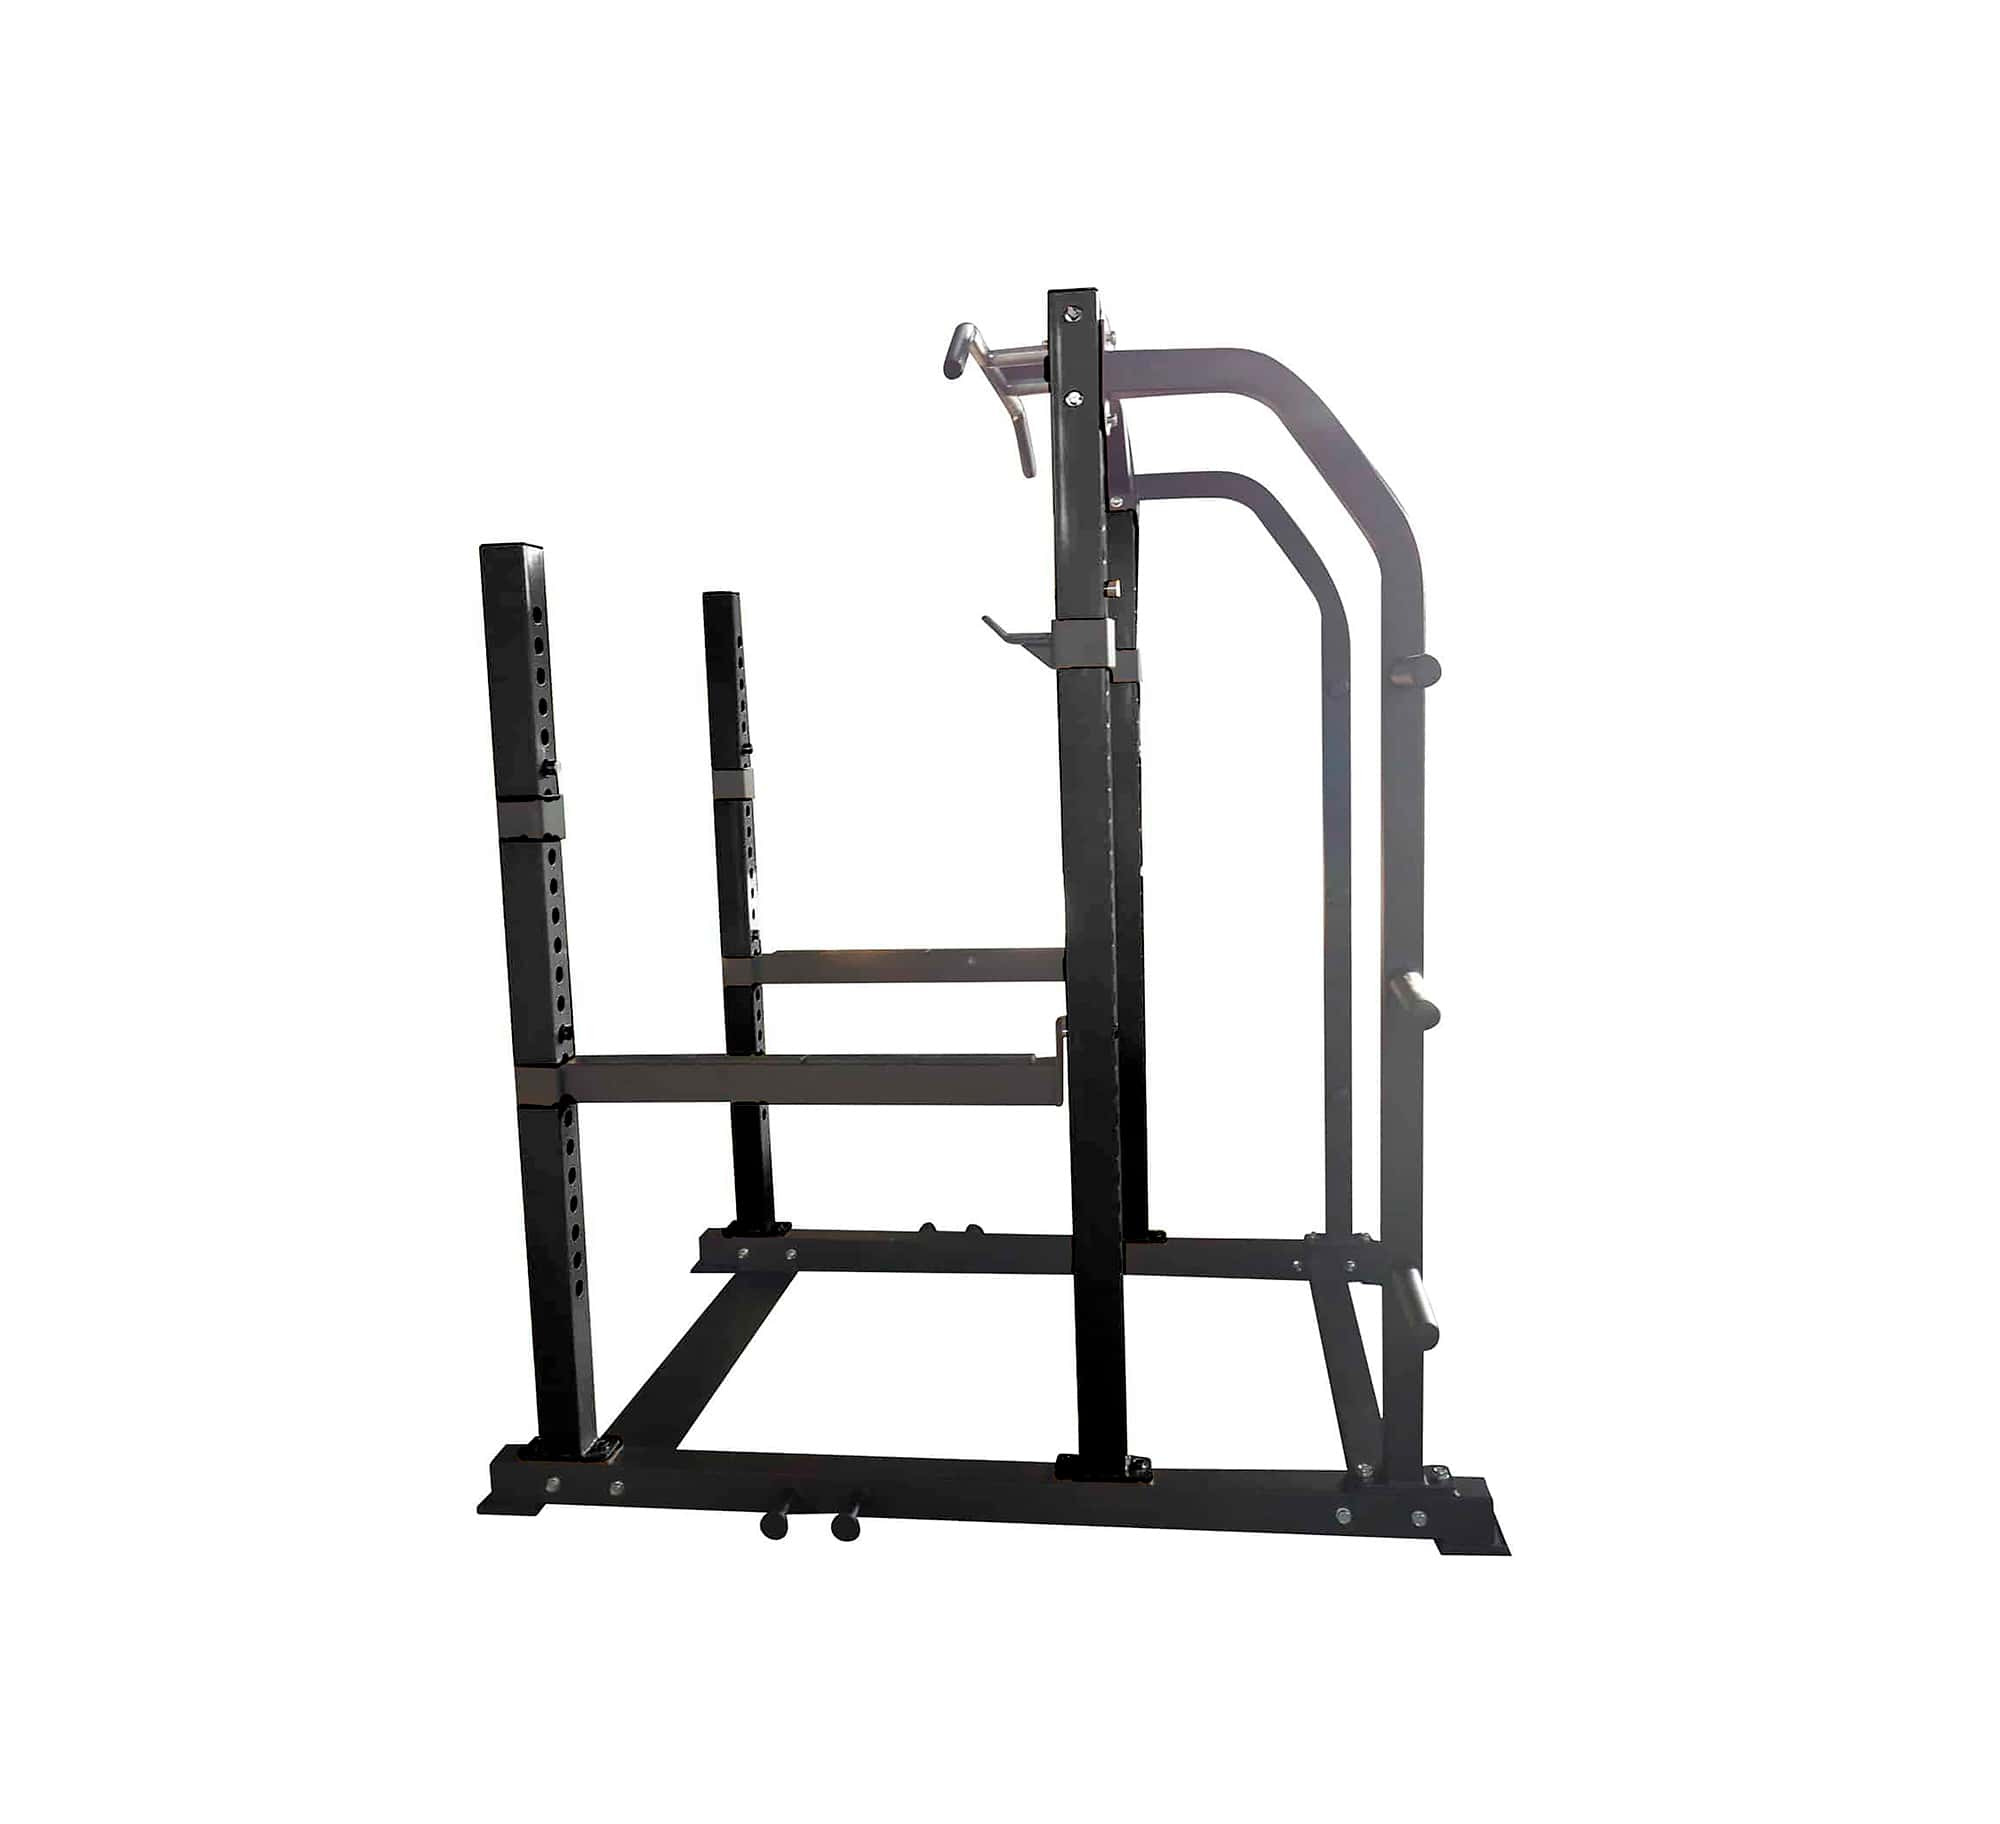 squat rack 4.0 commercial grade black